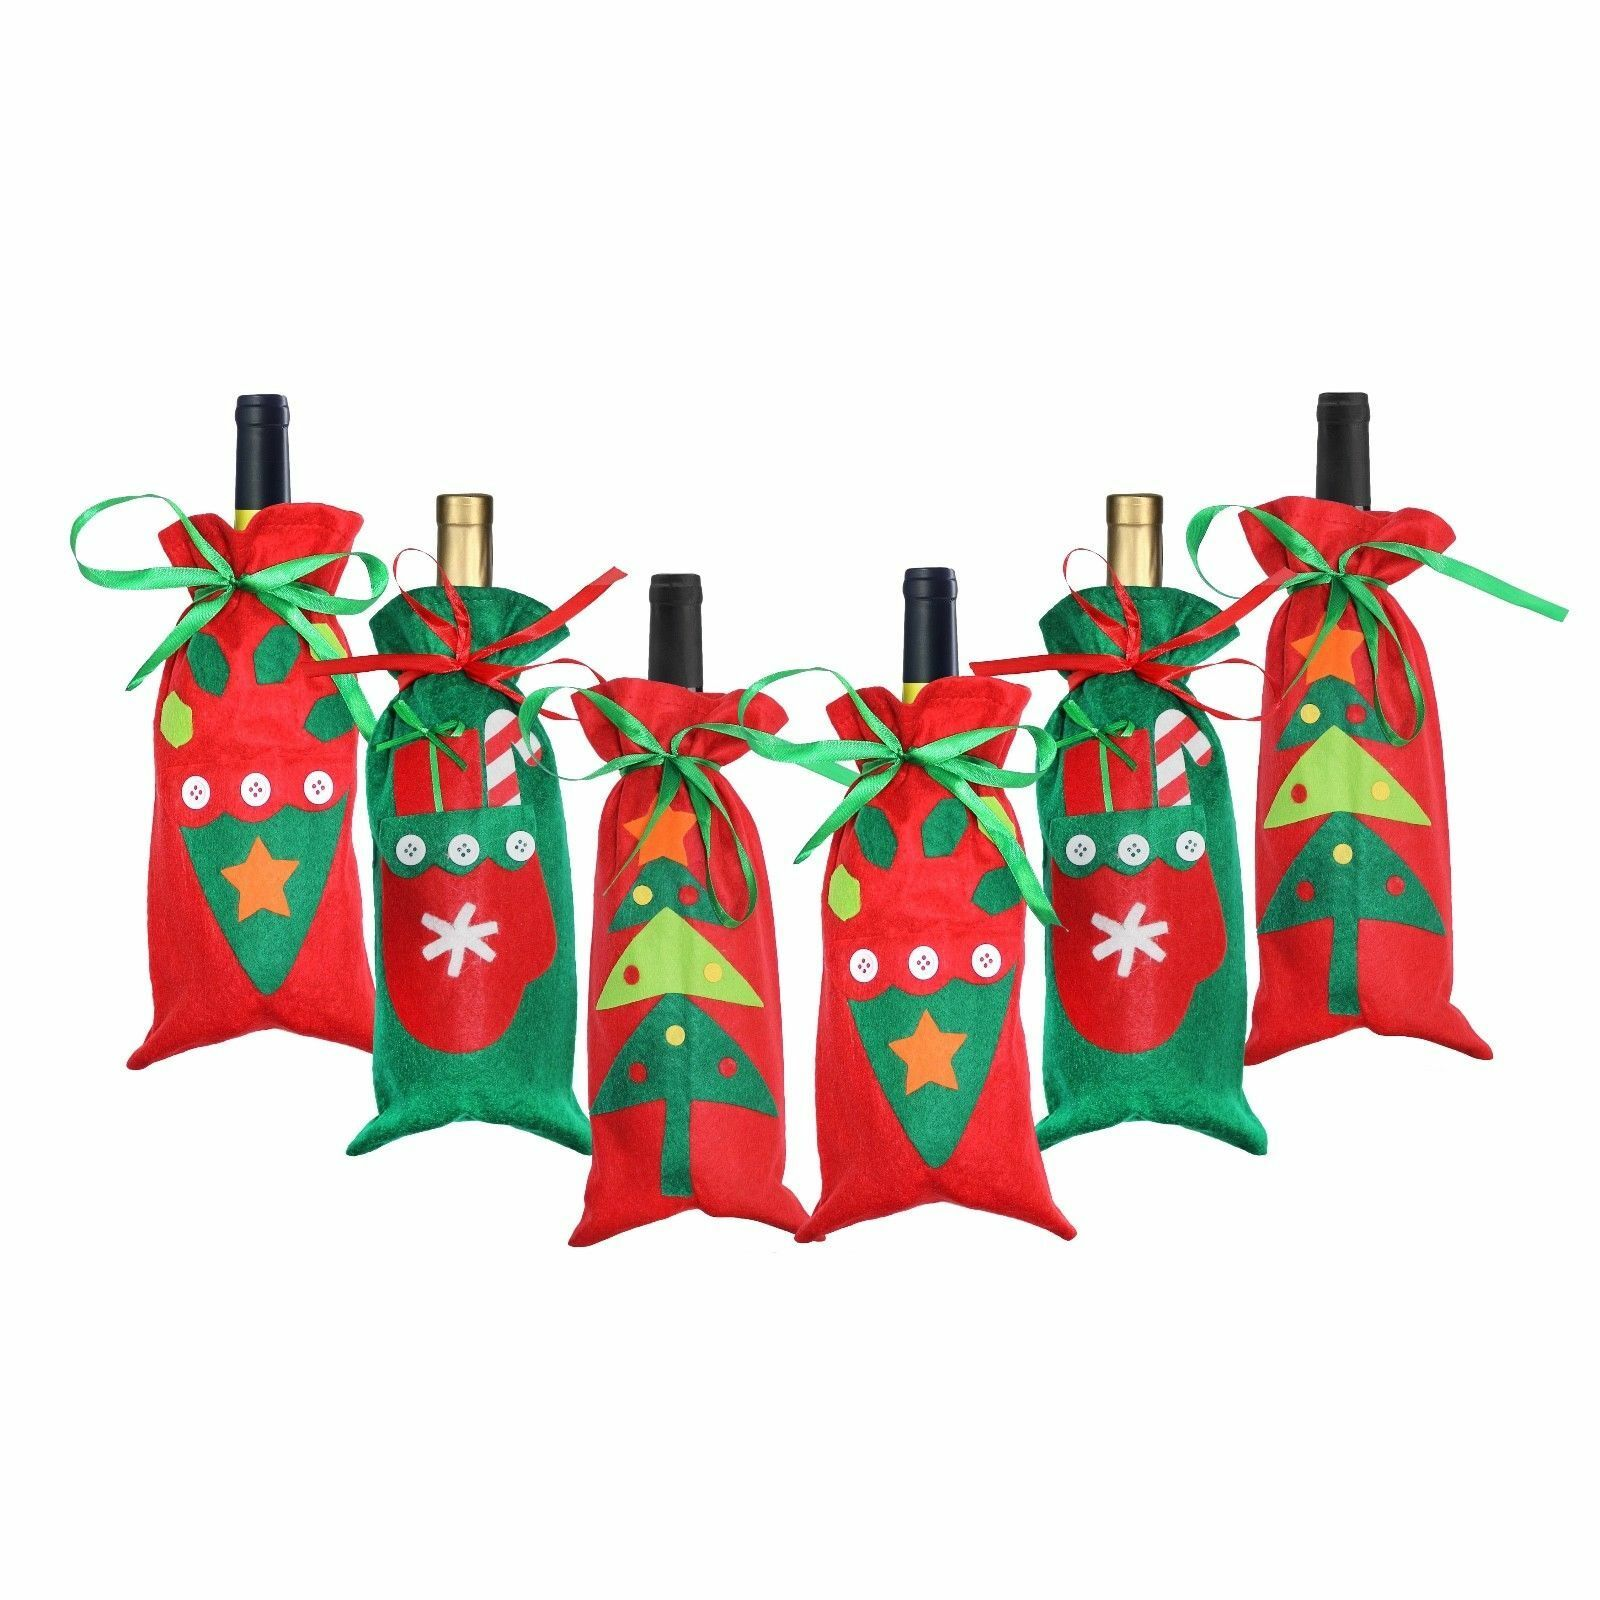 Felt Christmas Christmas Christmas Wine Bottle Bag Holders Table Decoration - rot & Grün 0fab5b